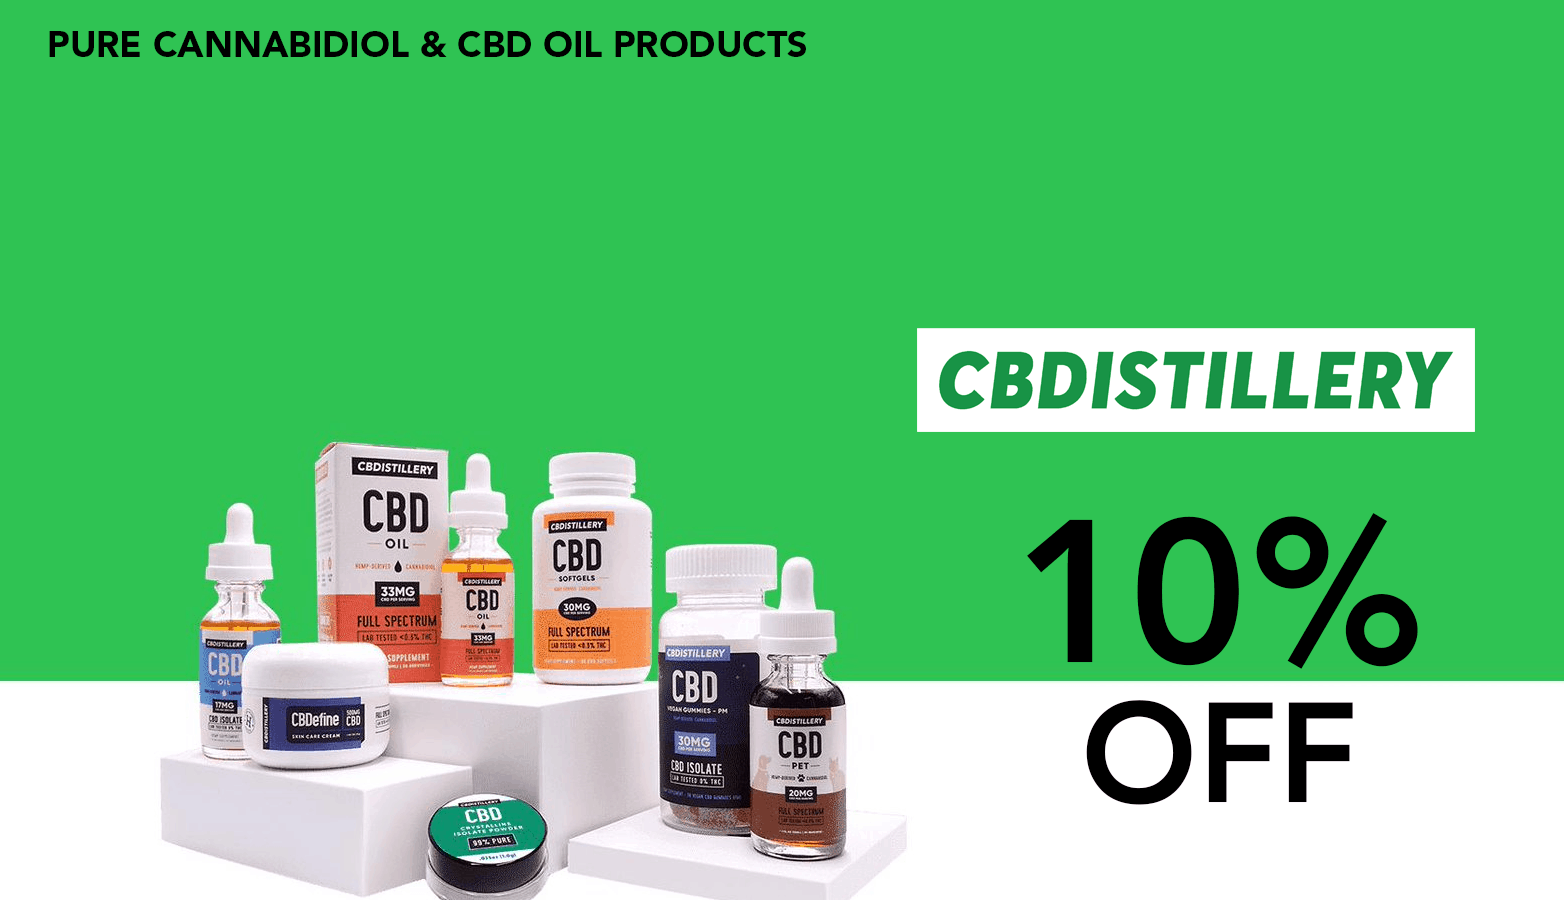 CBDistillery CBD Coupon Code discounts promos save on cannabis online Store Website